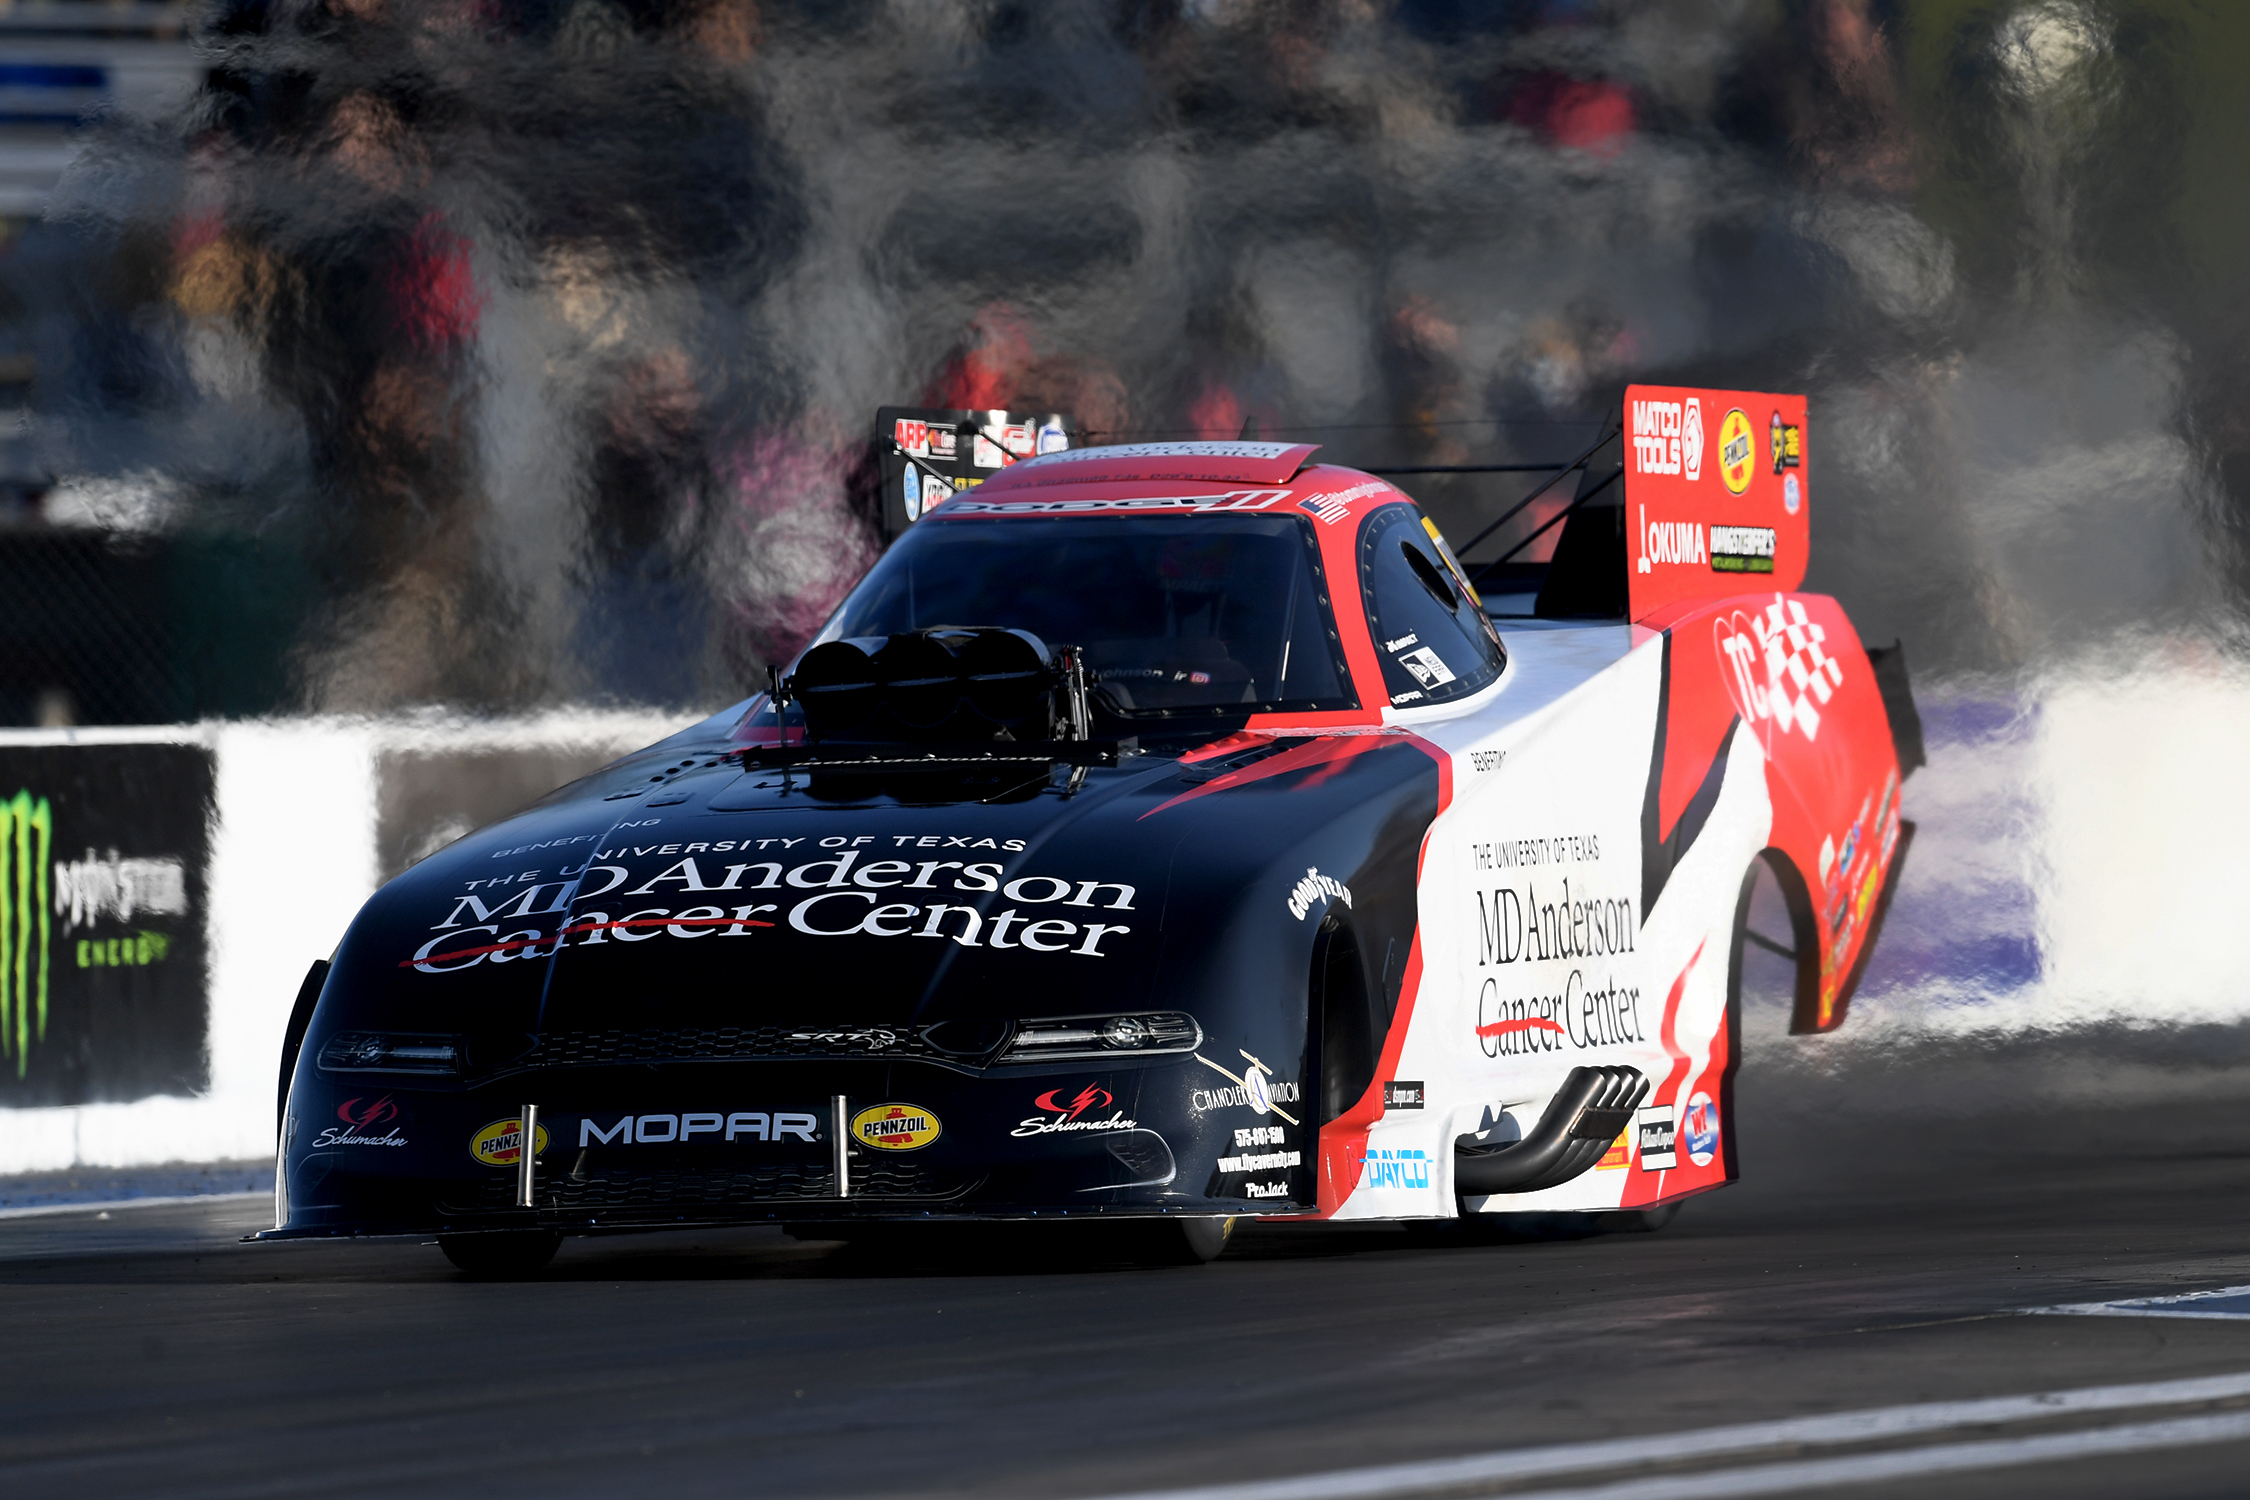 MD Anderson Cancer Center Funny Car pilot Tommy Johnson Jr. racing on Sunday at the ninth annual Mopar Express Lane NHRA Midwest Nationals presented by Pennzoil